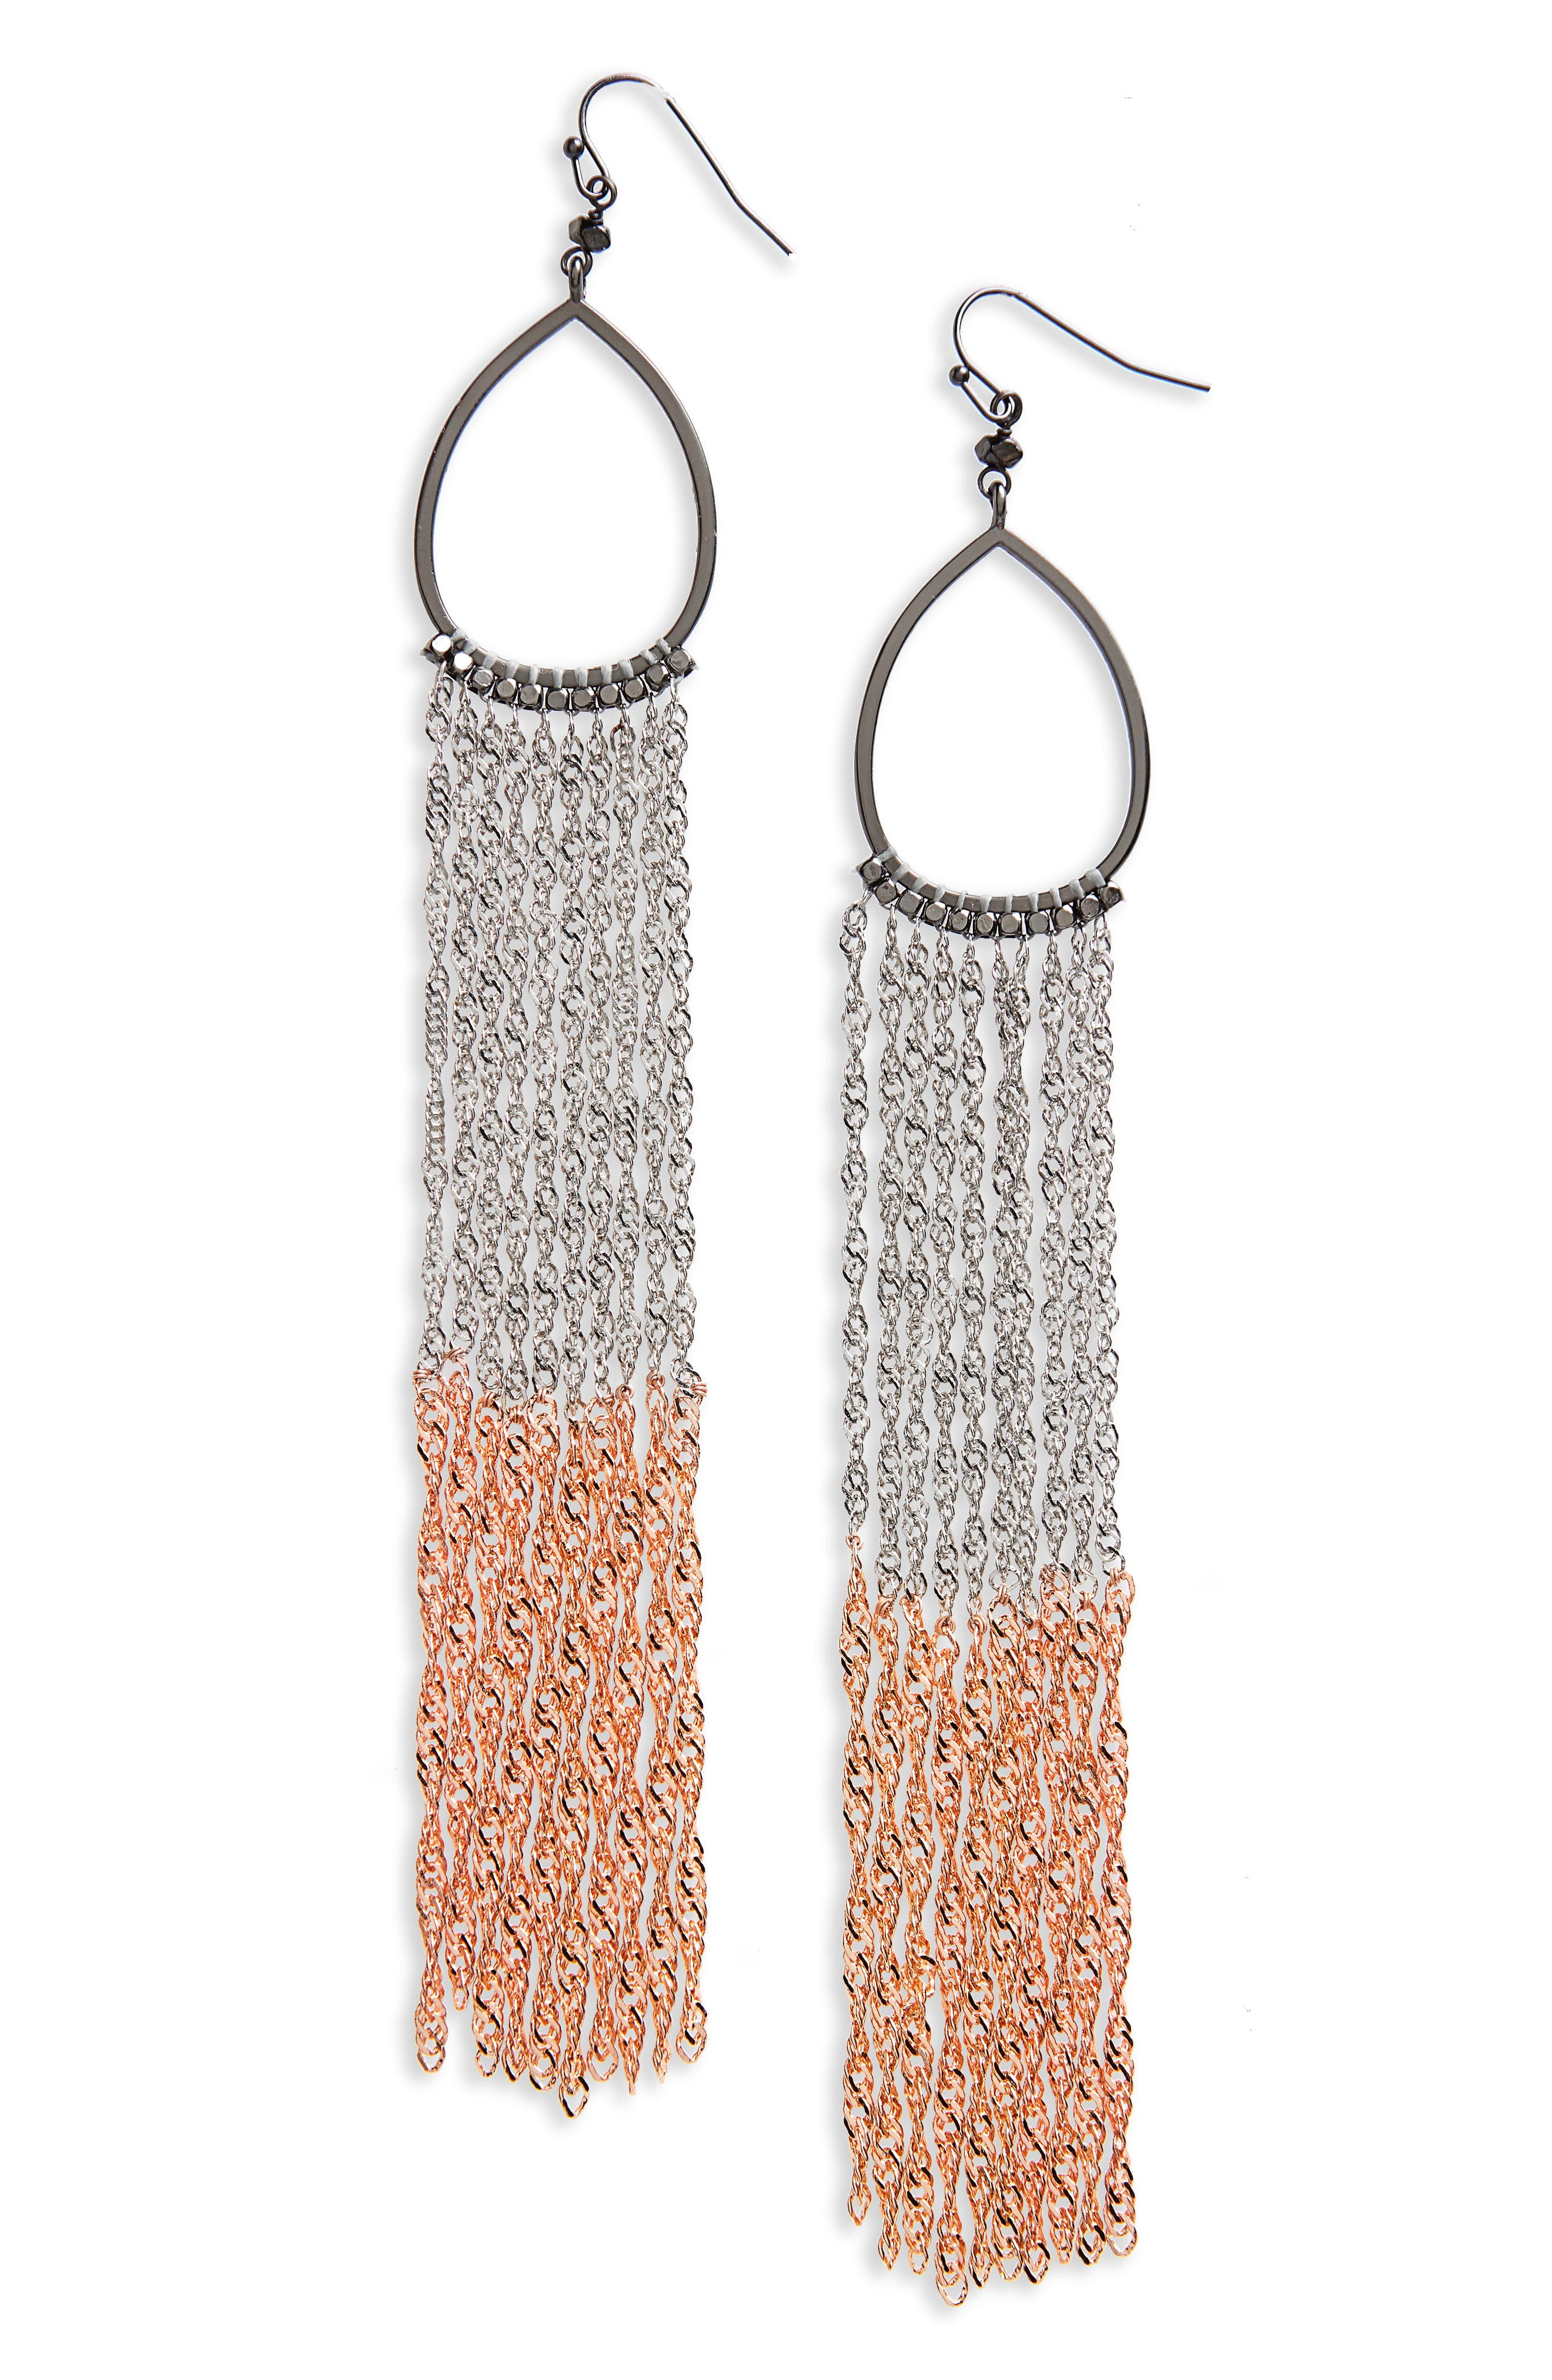 Extra Long Chain Fringe Earrings,                         Main,                         color, Silver/ Copper